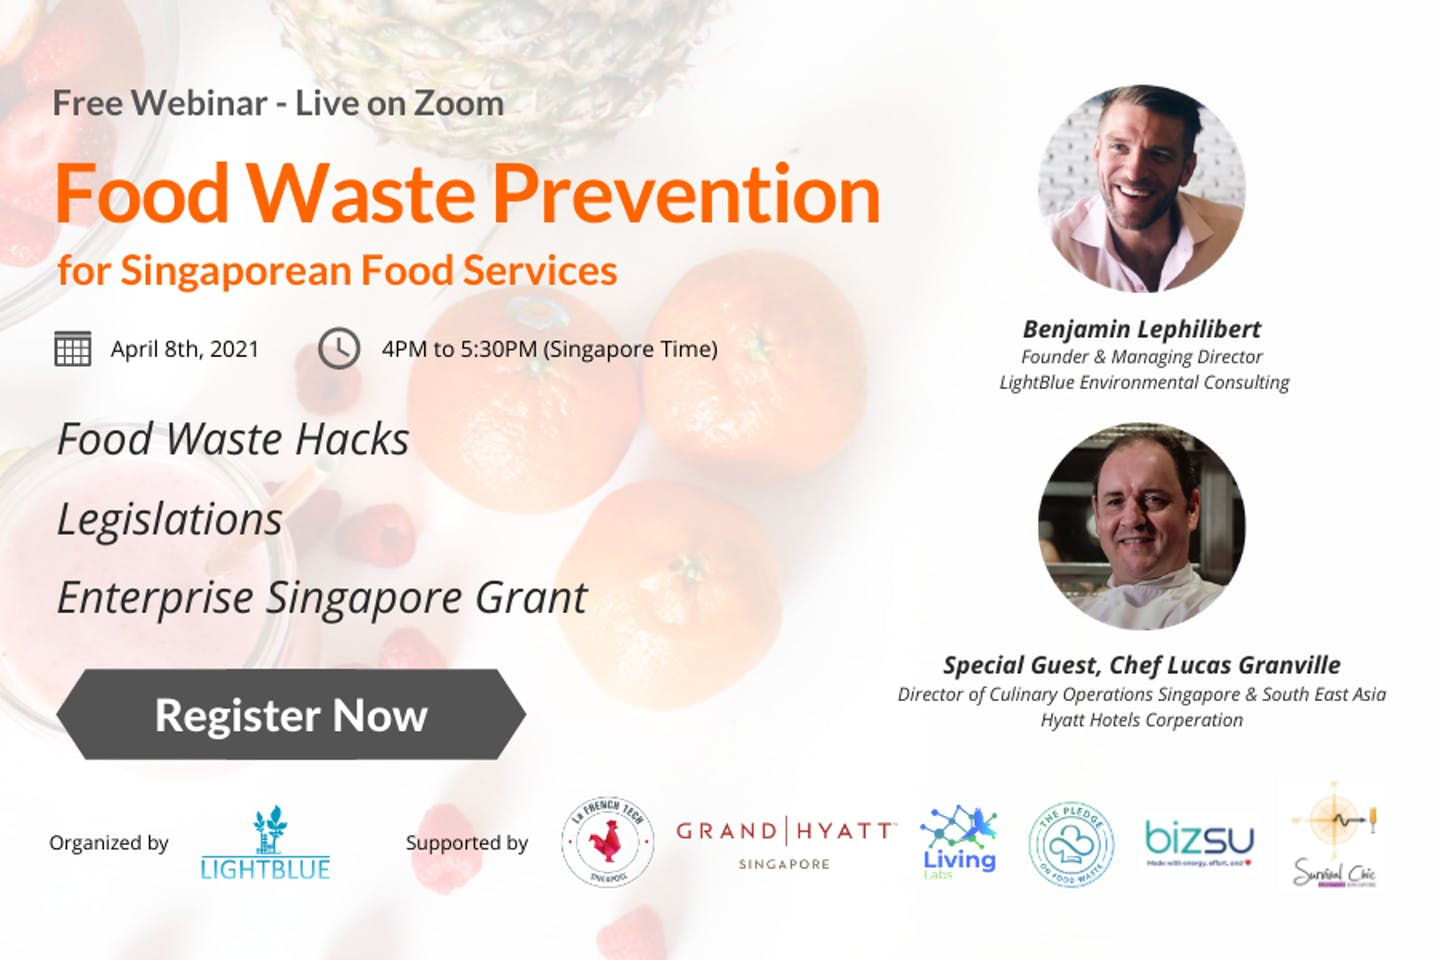 Food waste prevention for Singaporean food services (FREE Webinar)